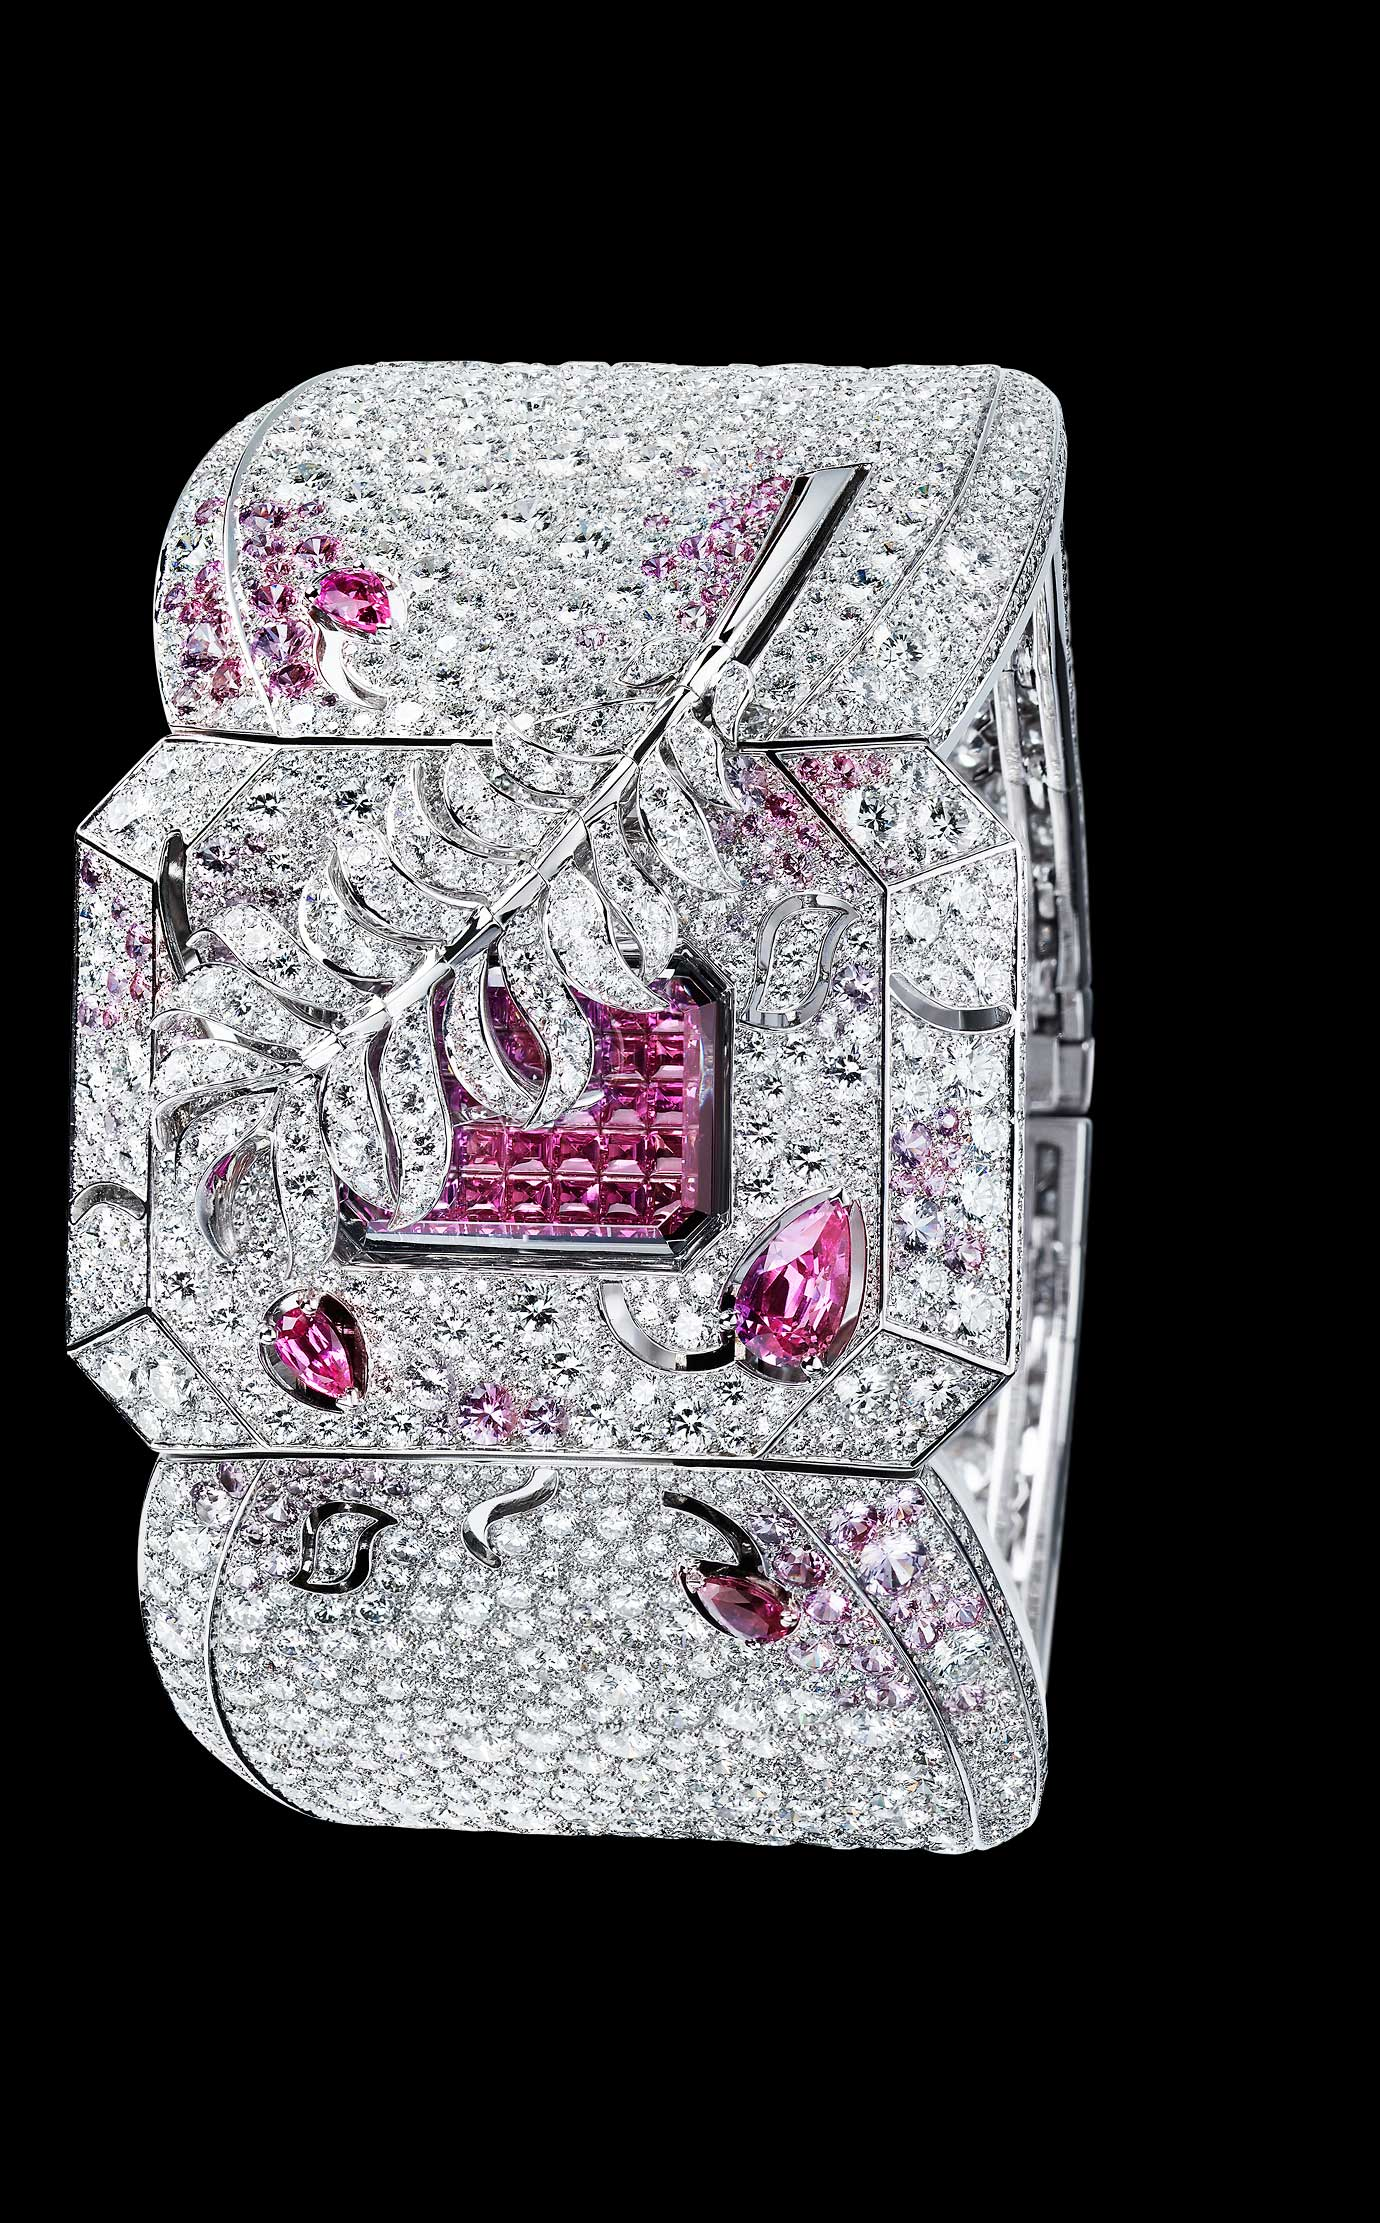 Les Eternelles de CHANEL. Watch in 18K white gold, pink sapphires and diamonds. High precision quartz movement. - Closed